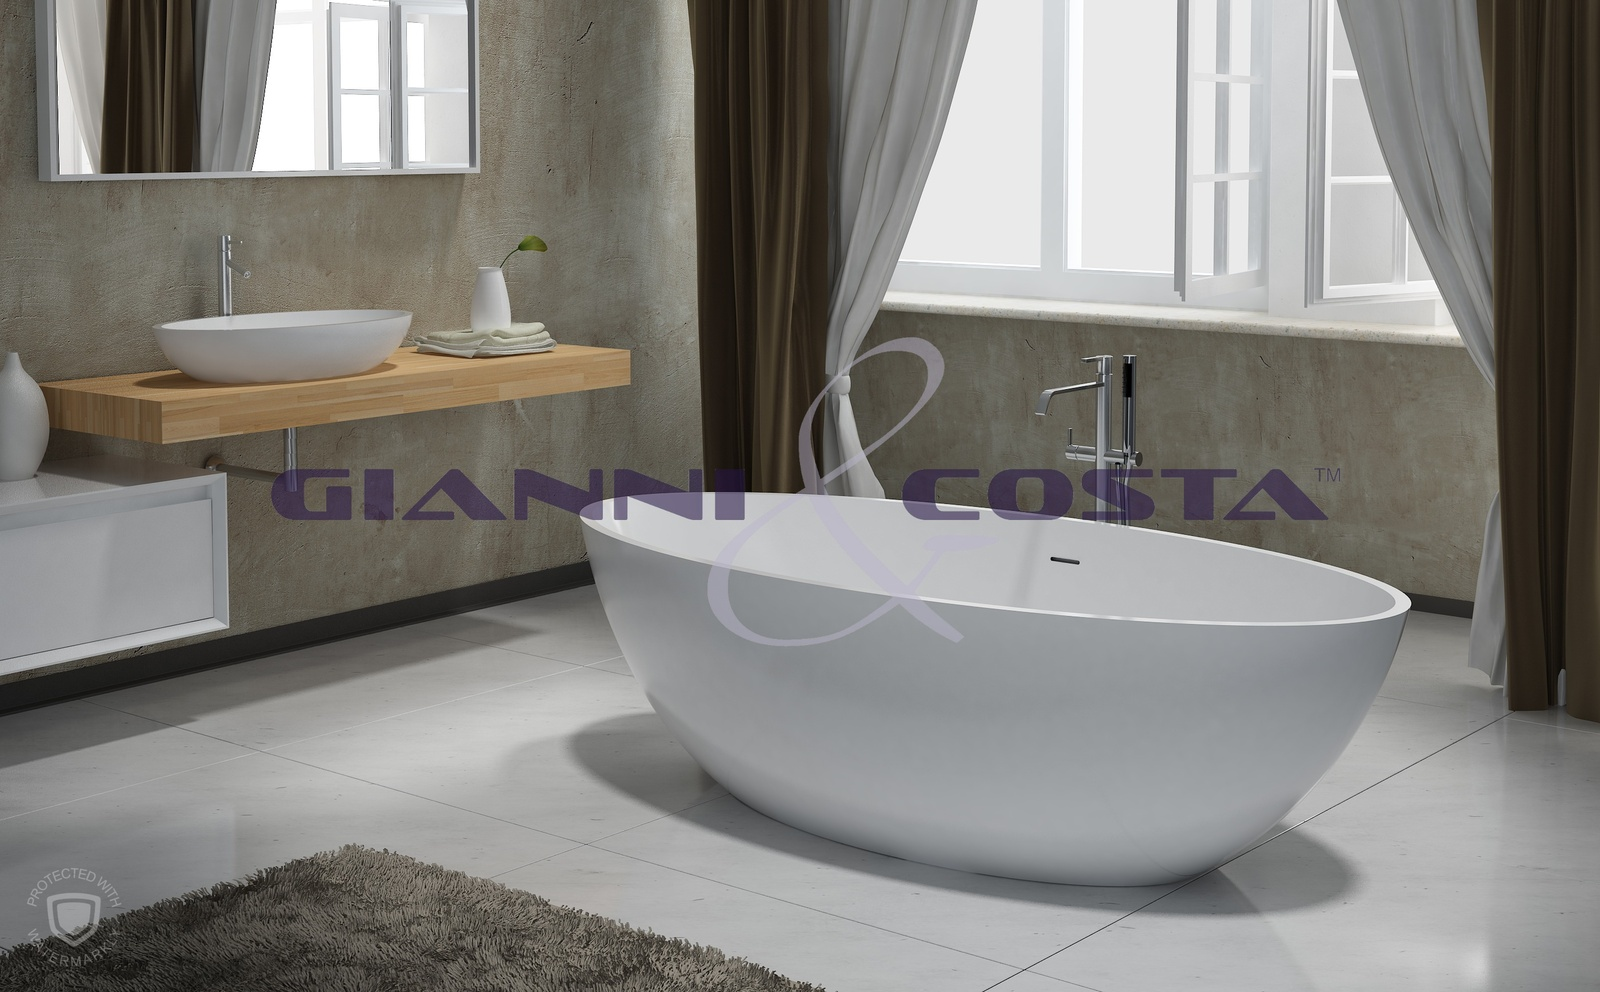 Solid Surface Free Standing Bath Tub - Matt White - Model Isola GC1057 1800mm